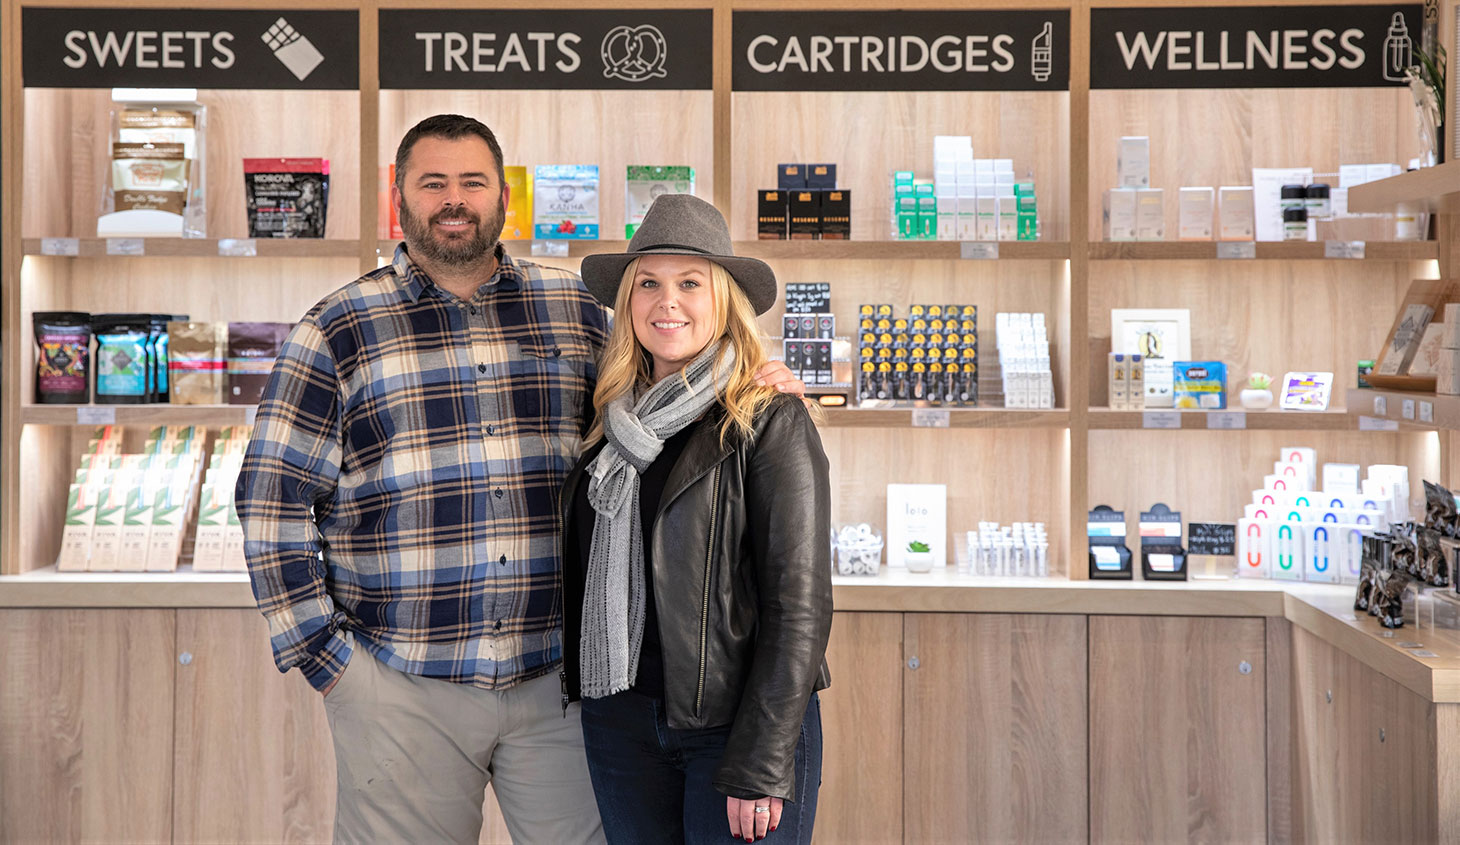 Inside Flora Terra store with owners, David and Alicia Wingard, posing and smiling in front of sign